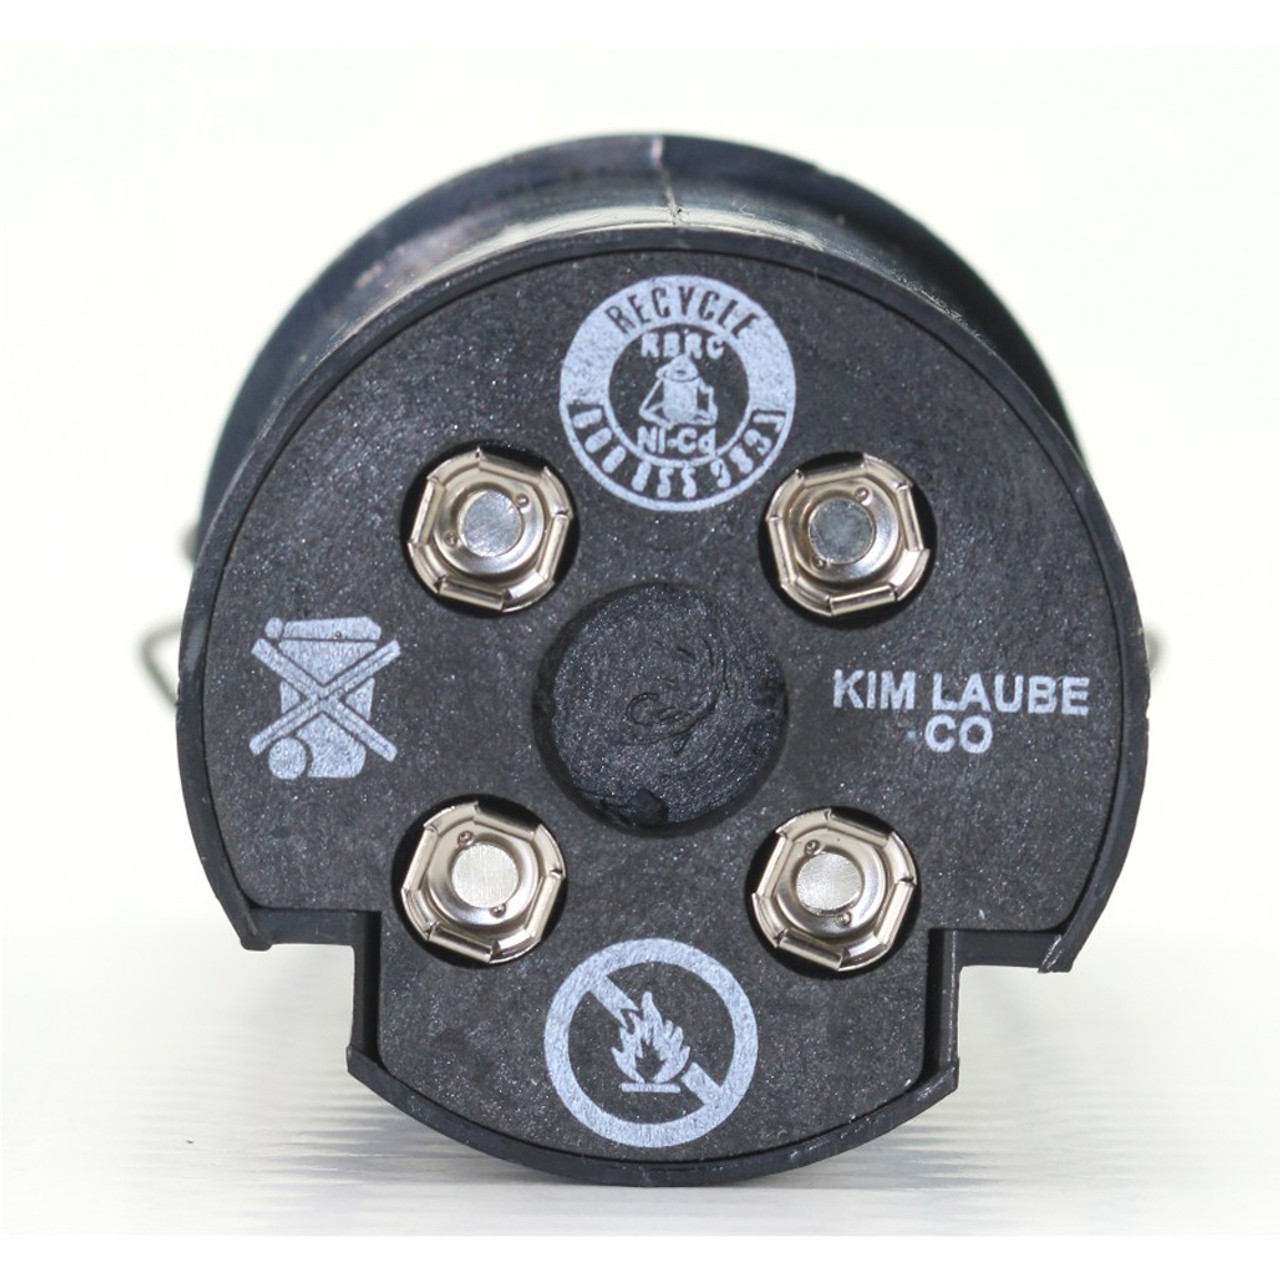 Lazor Super Battery contacts shown.